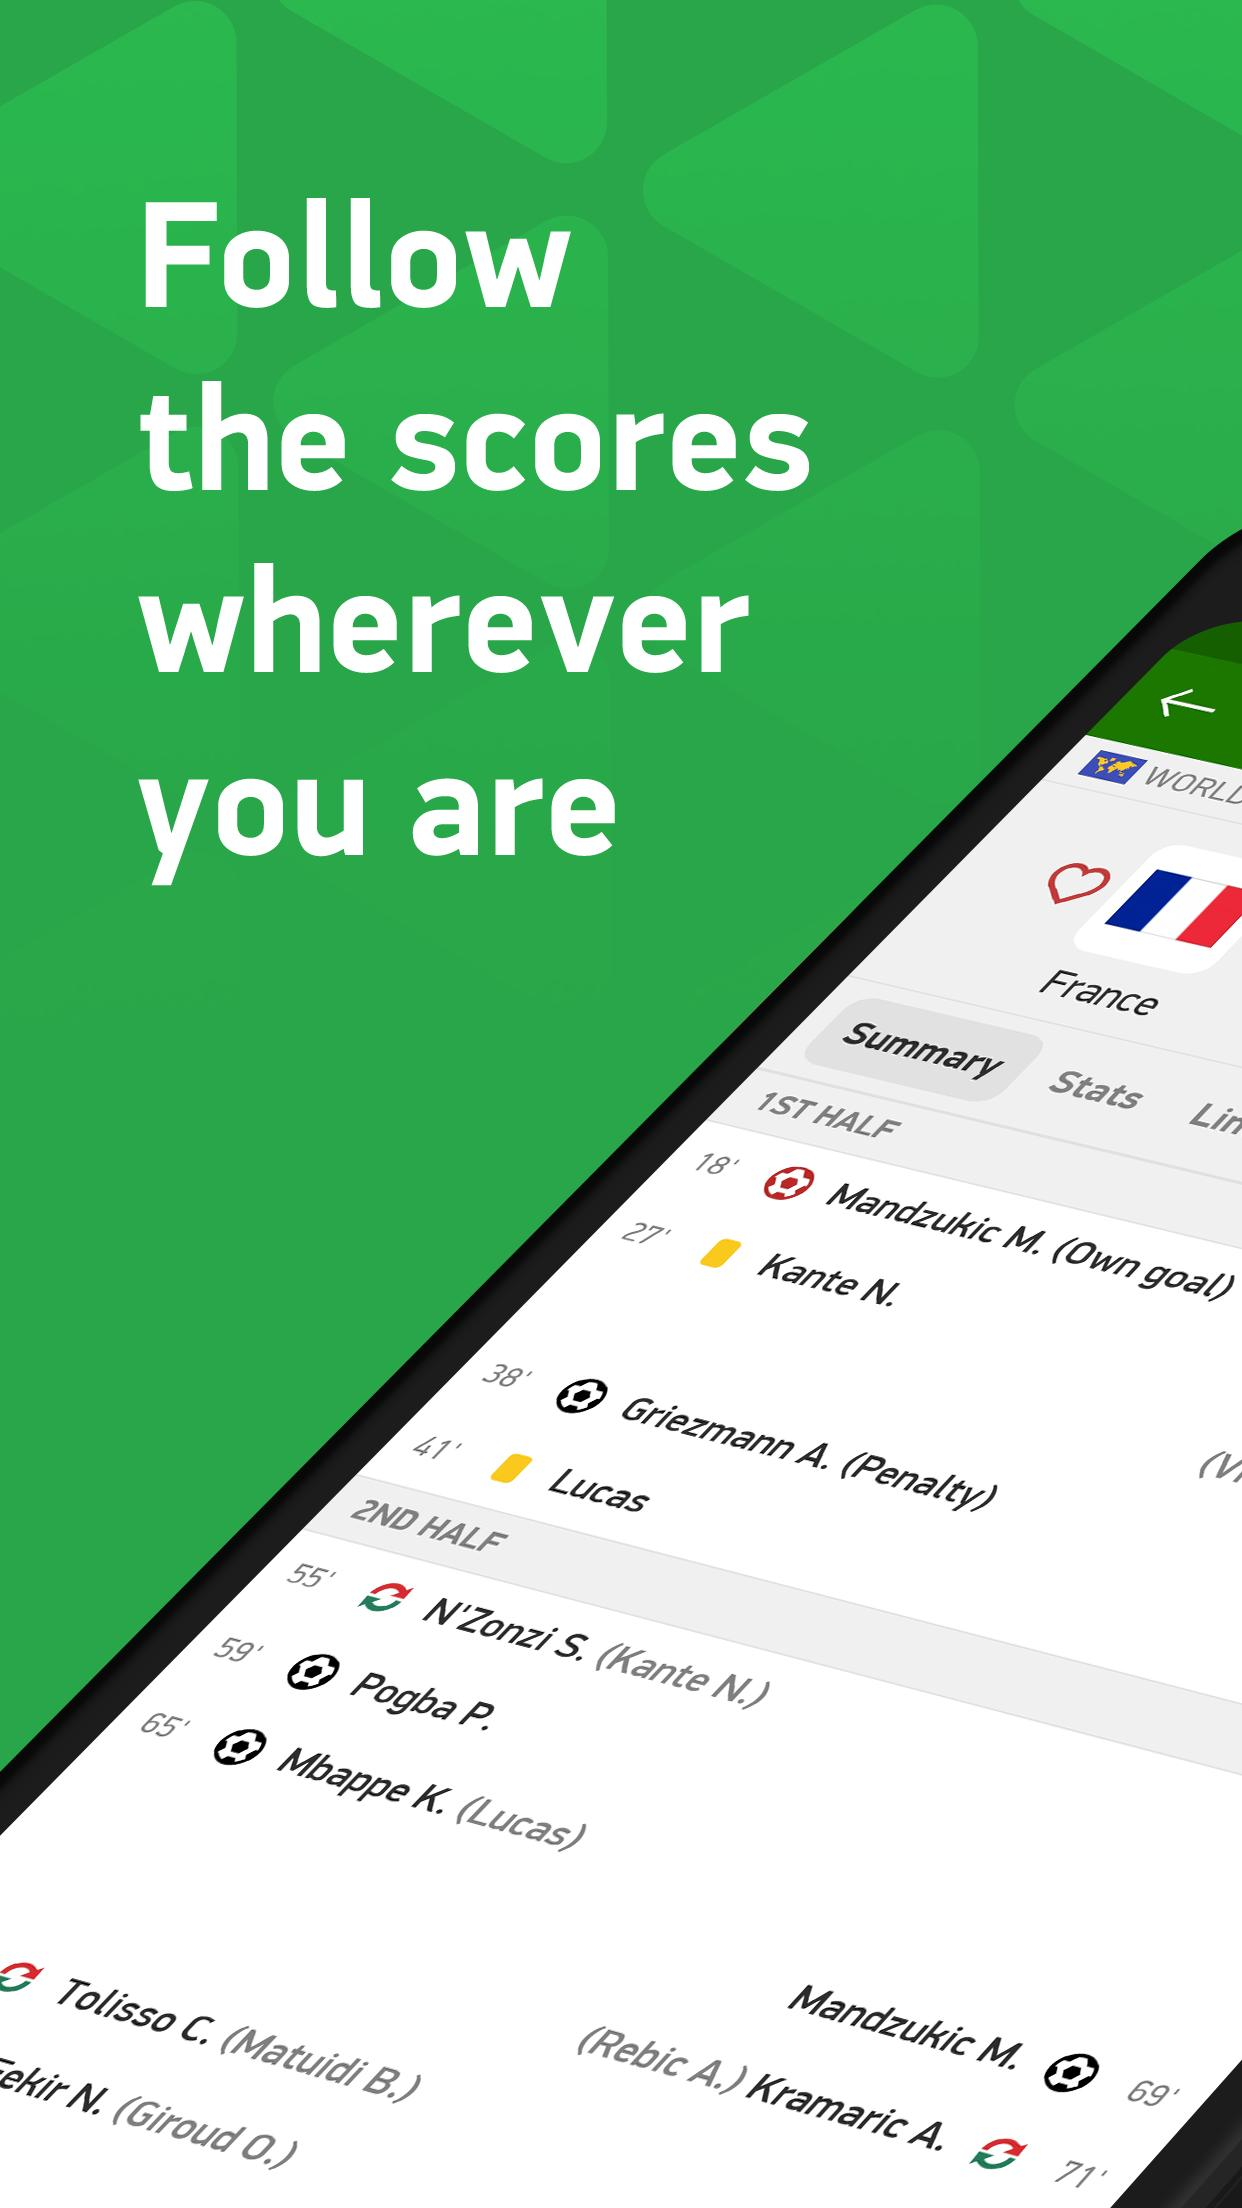 Flashscore Nigeria For Android Apk Download